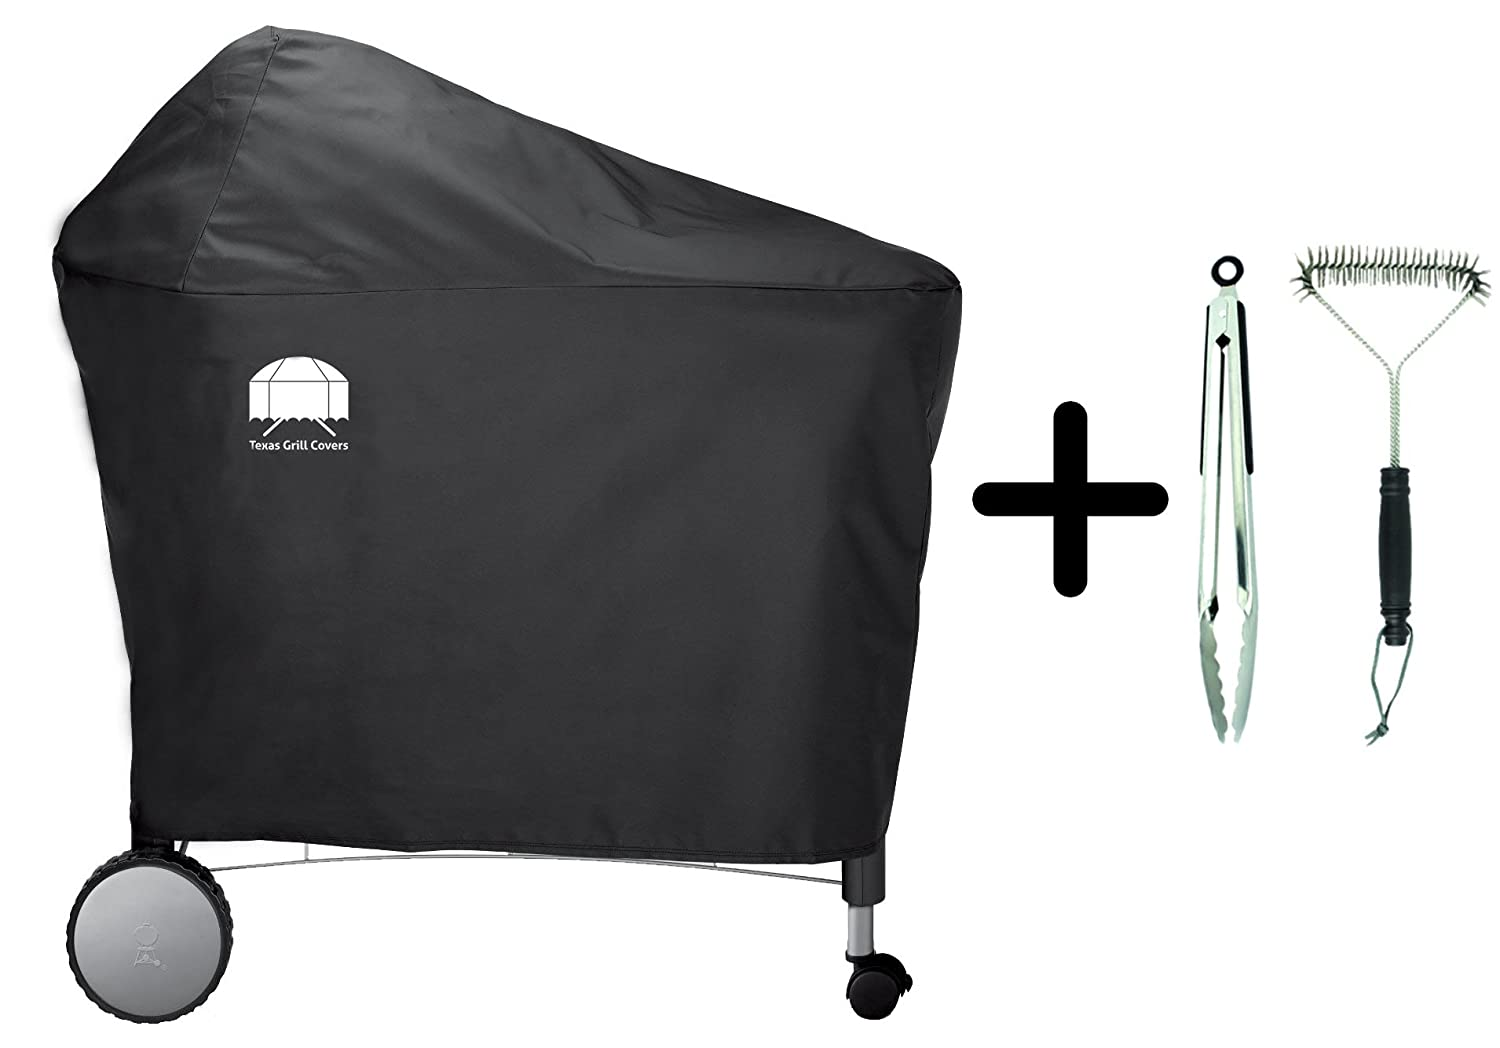 Texas Grill Covers 7455 Premium Cover for Weber Performer Including Brush and Tongs günstig kaufen